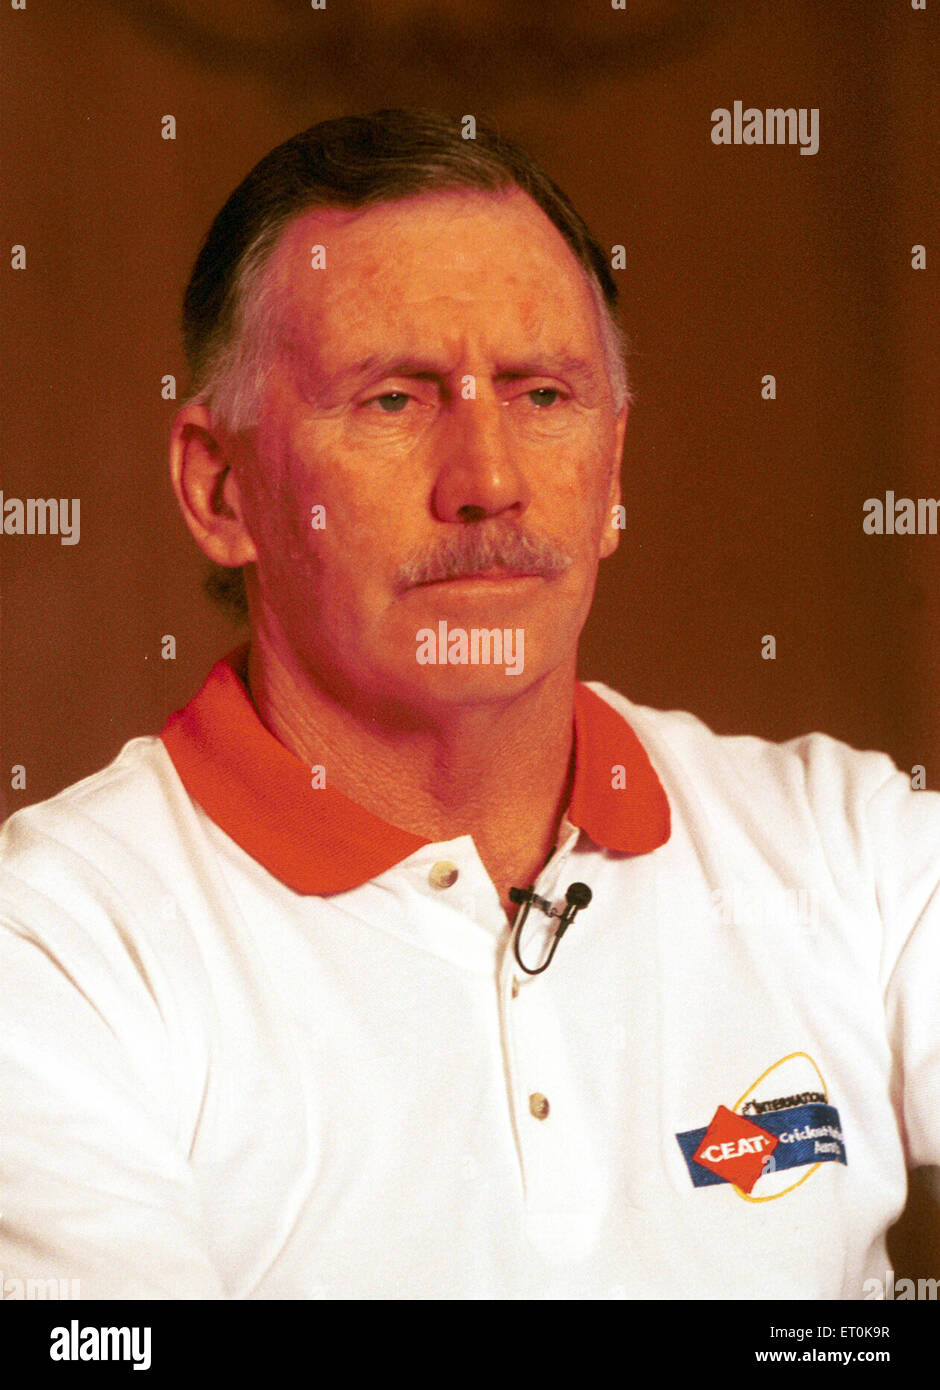 Ian Michael Chappell former cricketer who played for South Australia and Australia NO MR - Stock Image